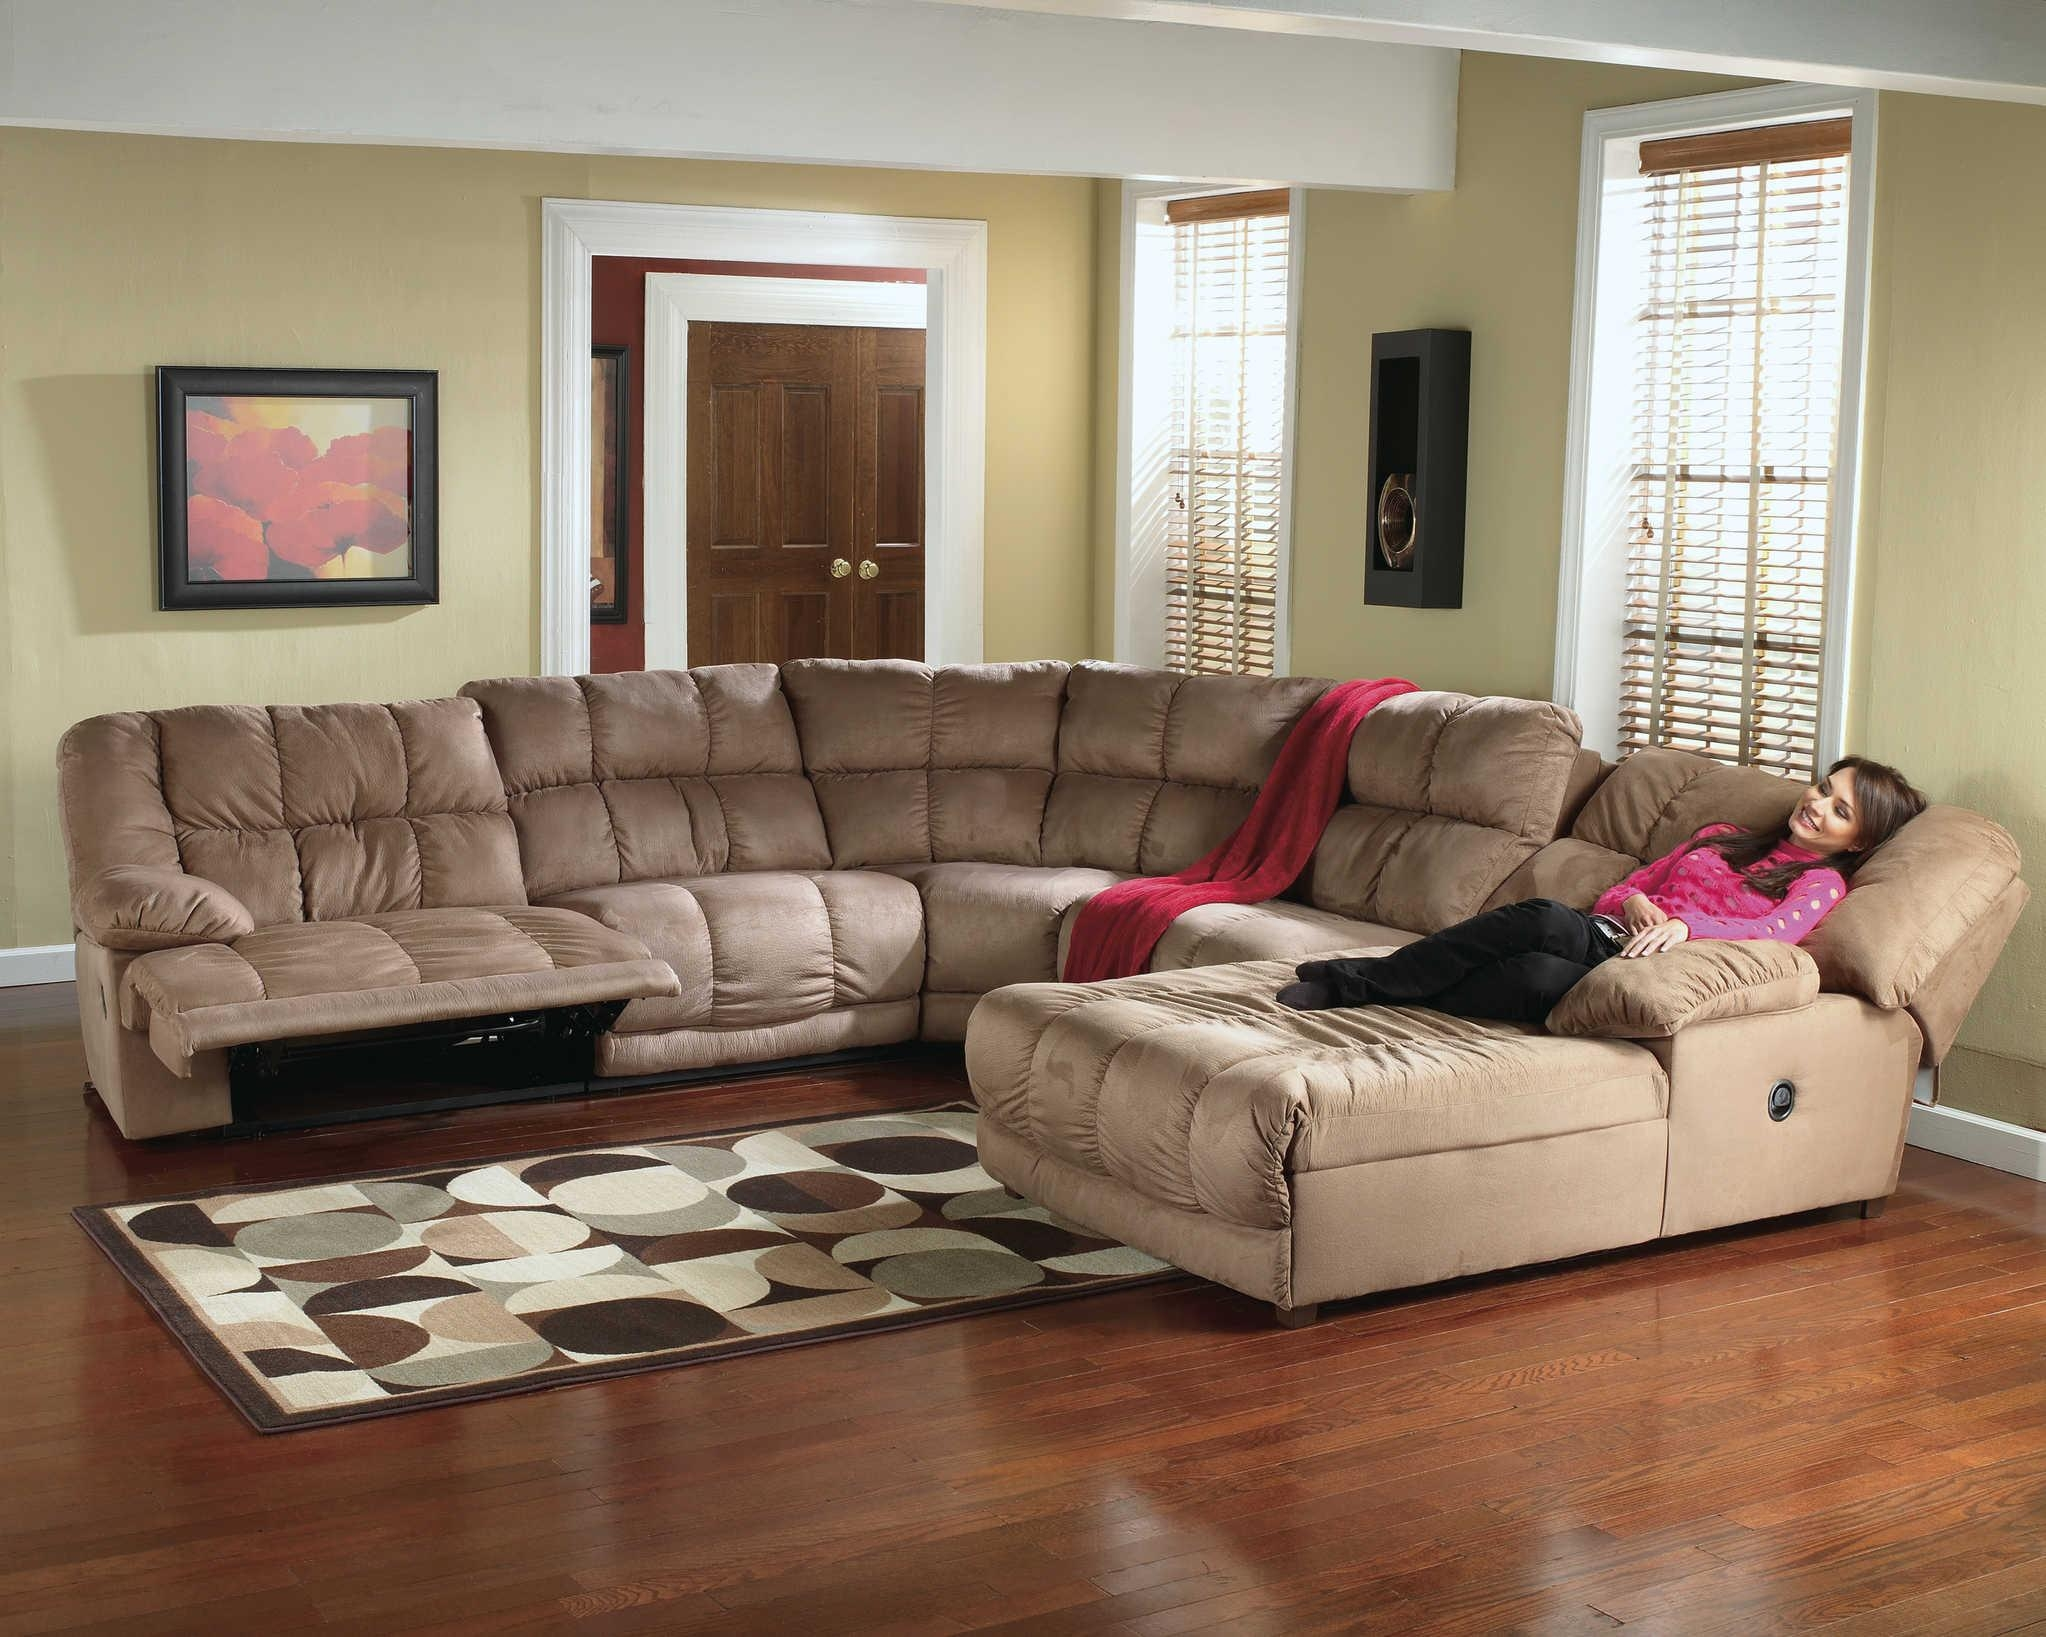 Luxury Microfiber Sectional Sofas With Chaise 62 For Braxton Regarding Braxton Sectional Sofas (View 15 of 20)